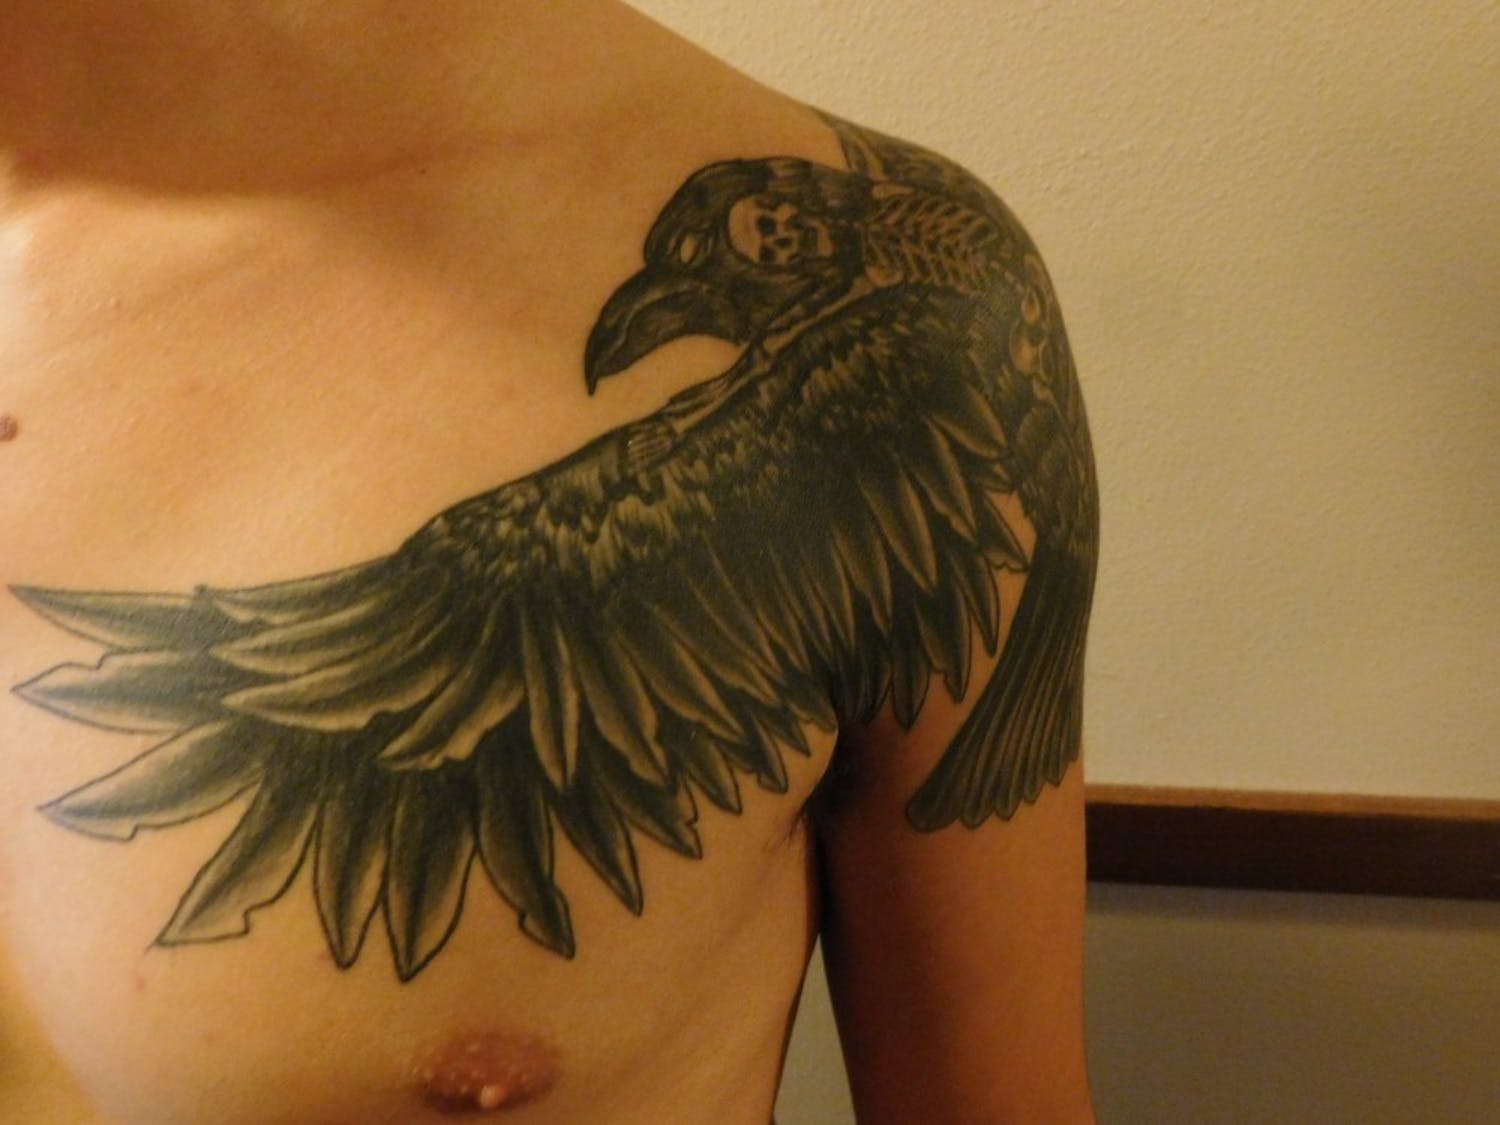 Personal tragedy can fuel creative passions like tattooing.